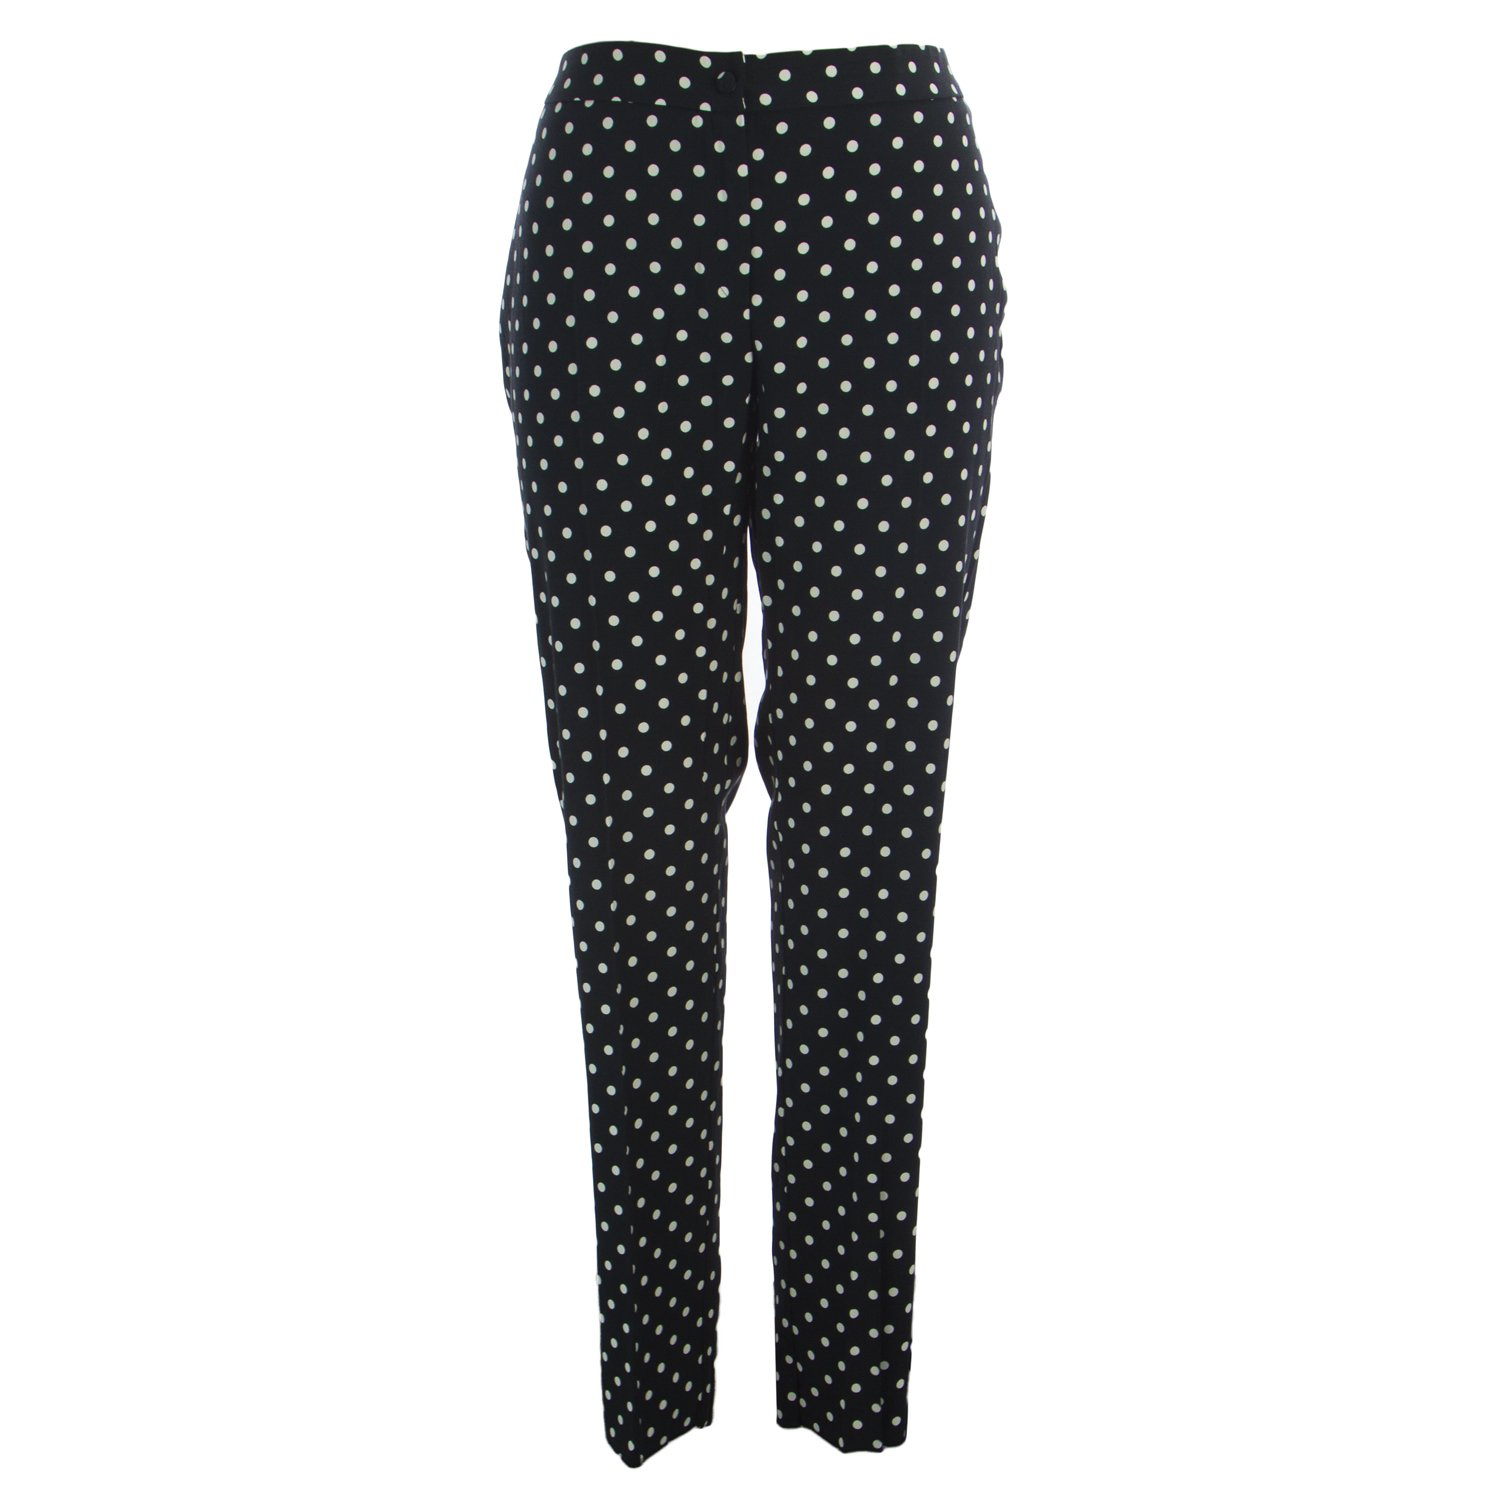 Marina Rinaldi Women's Ragazza Polka Dot Pants 18W / 27 Navy